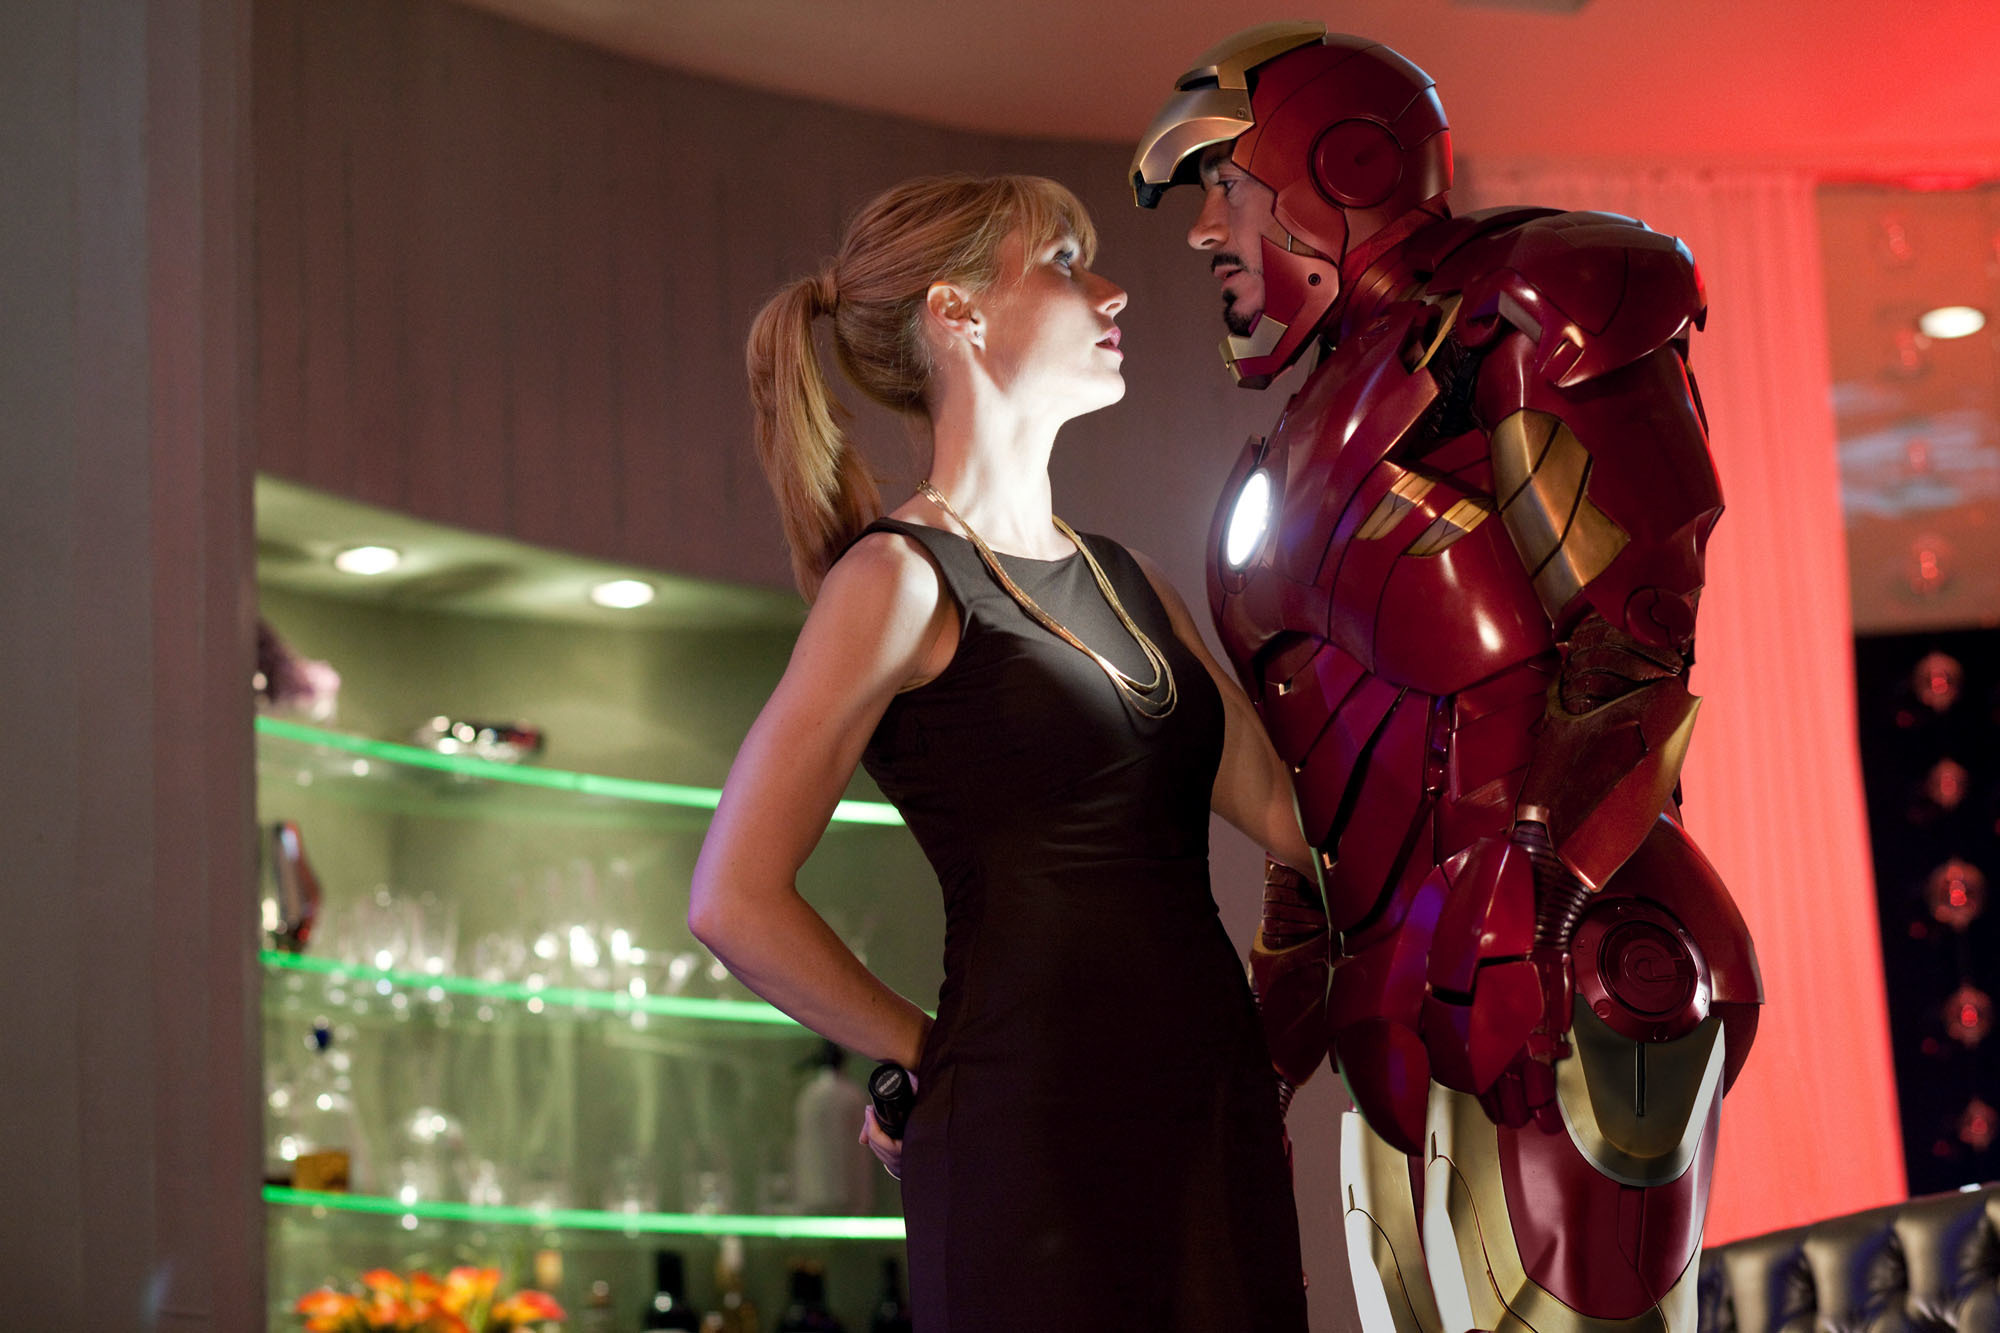 Robert Downey Jr. jokes Gwyneth Paltrow is his 'free pass'